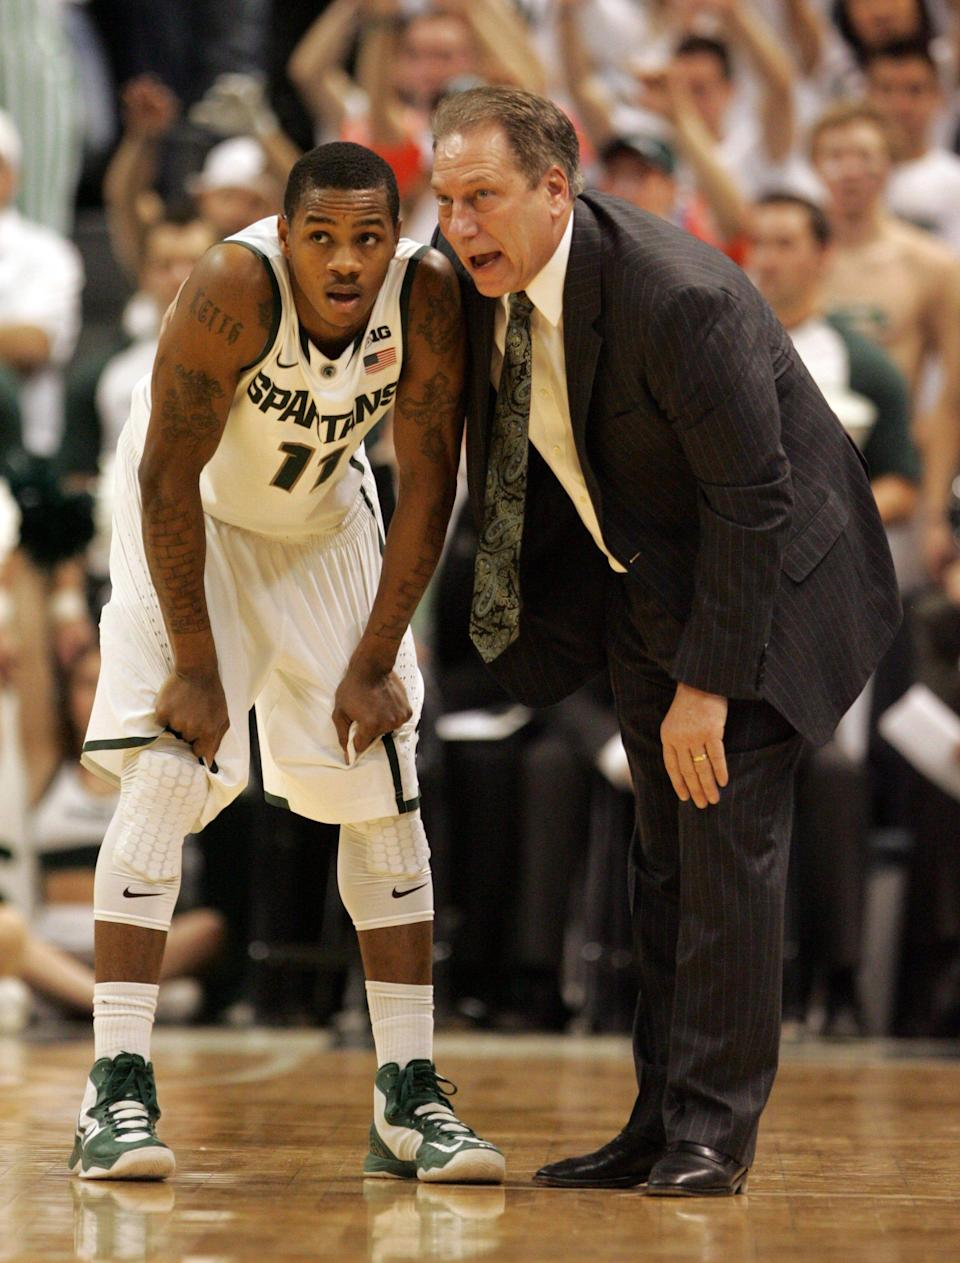 Michigan State coach Tom Izzo talks with guard Keith Appling during a game against Michigan, Feb.12, 2013 at the Breslin Center in East Lansing .